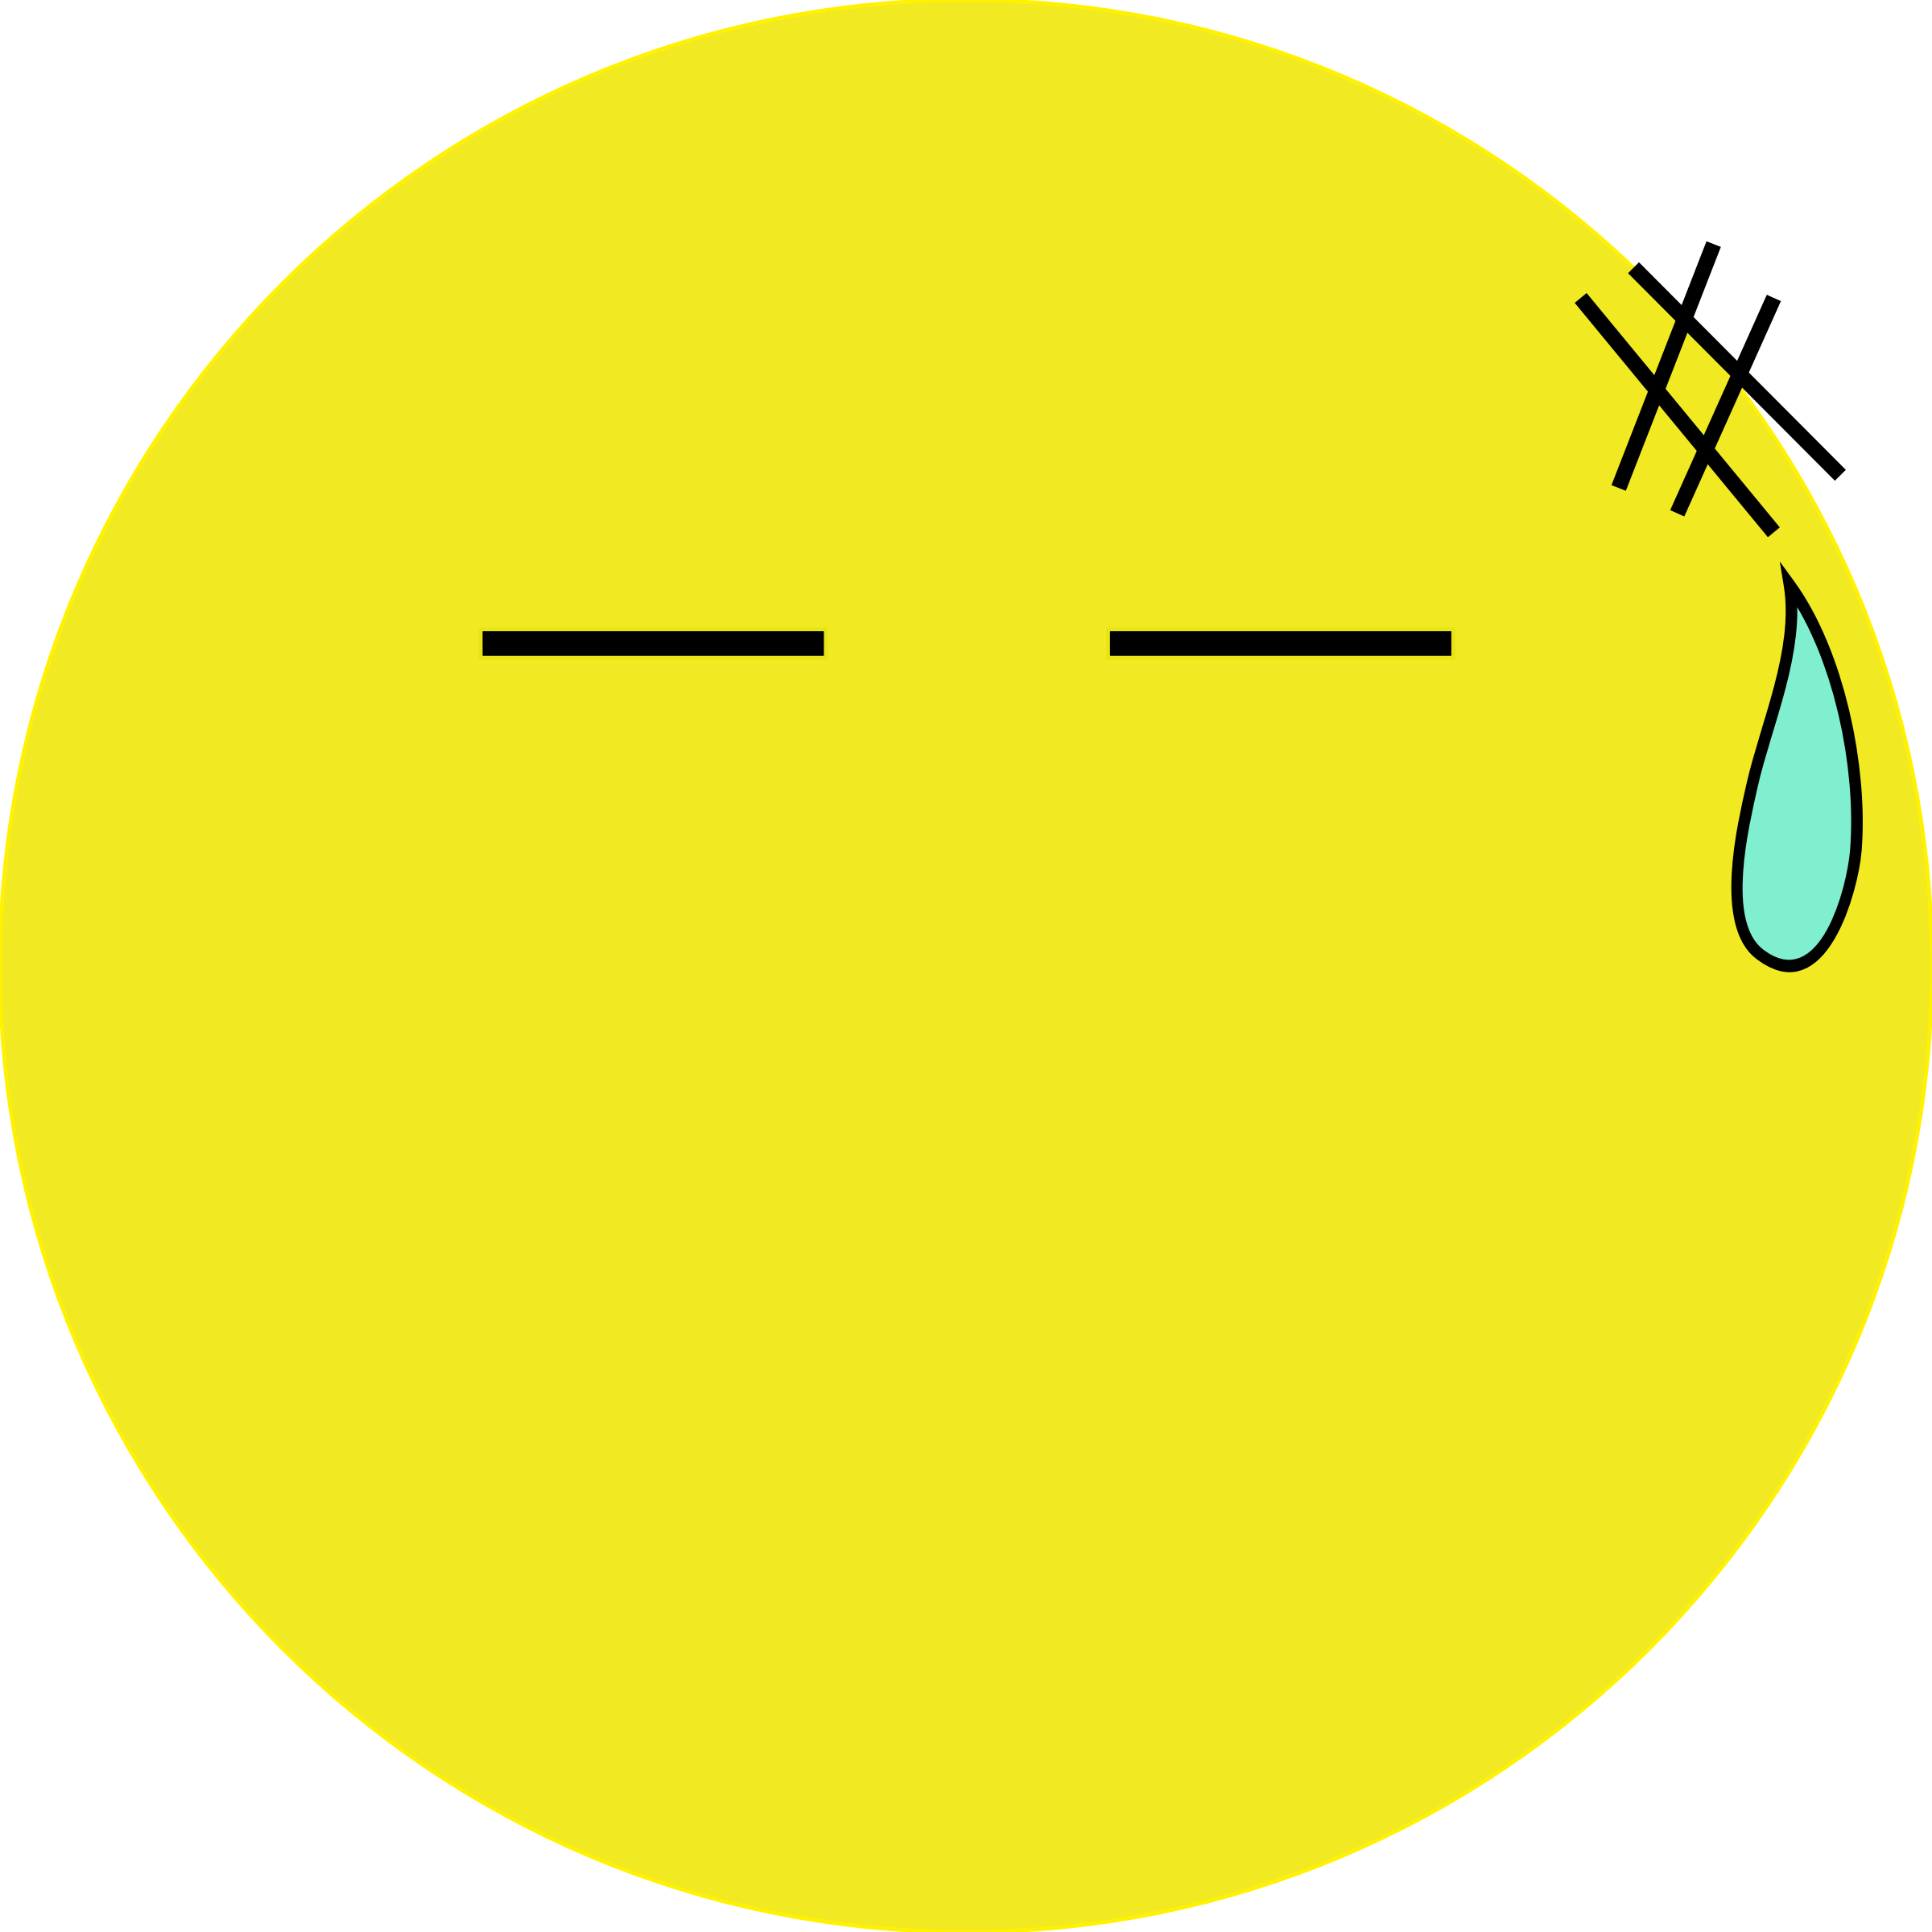 clip Smiley big image png. Frustrated clipart.